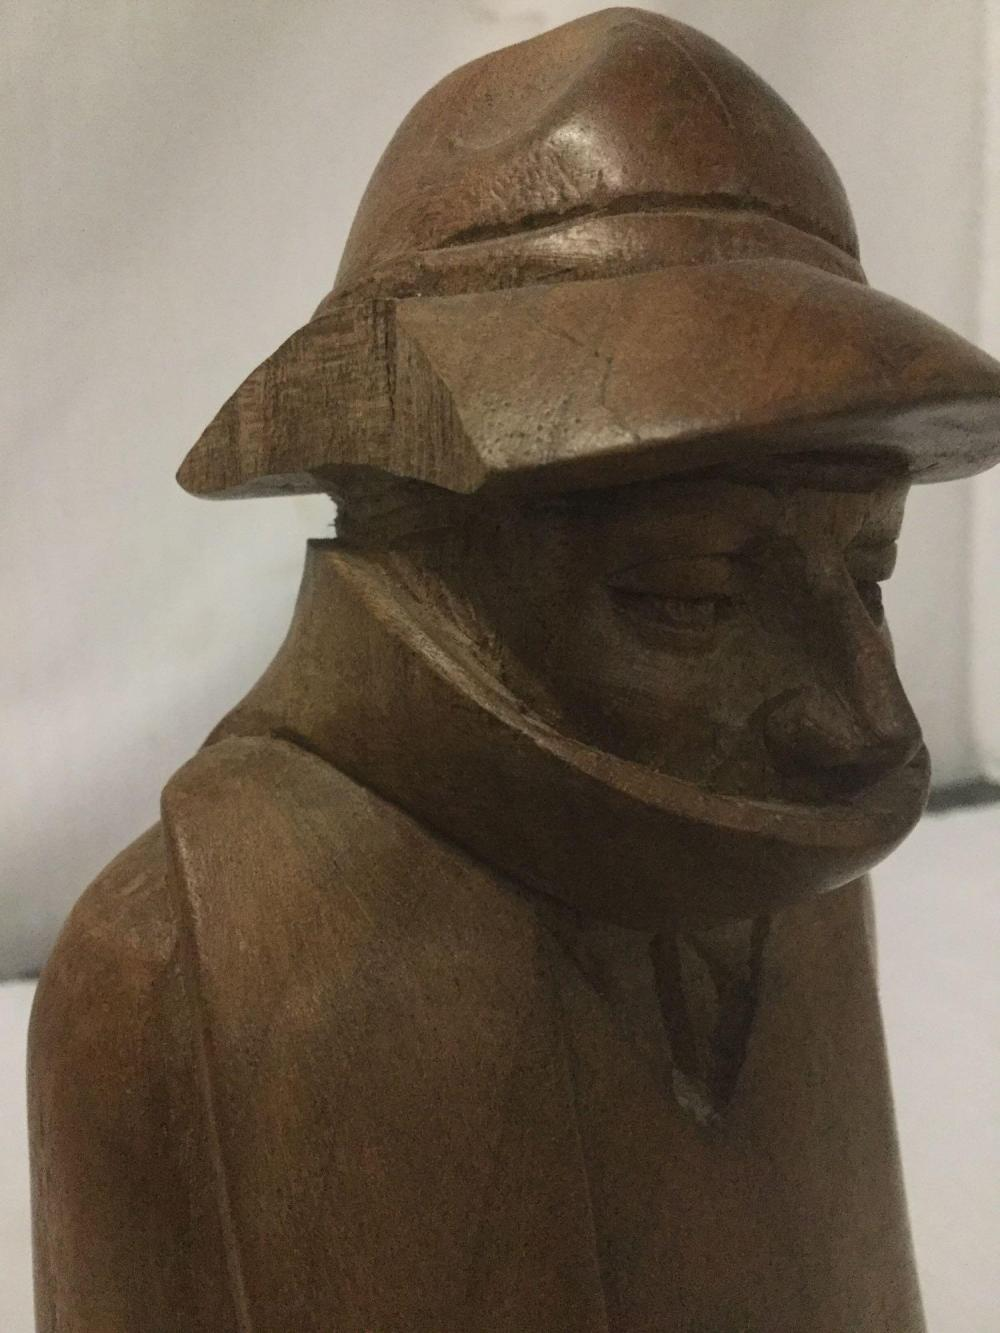 Lot 199: Hand carved wood statue of man with scarf. Marked G.A. 300 dollars 11 - Has chip in hat